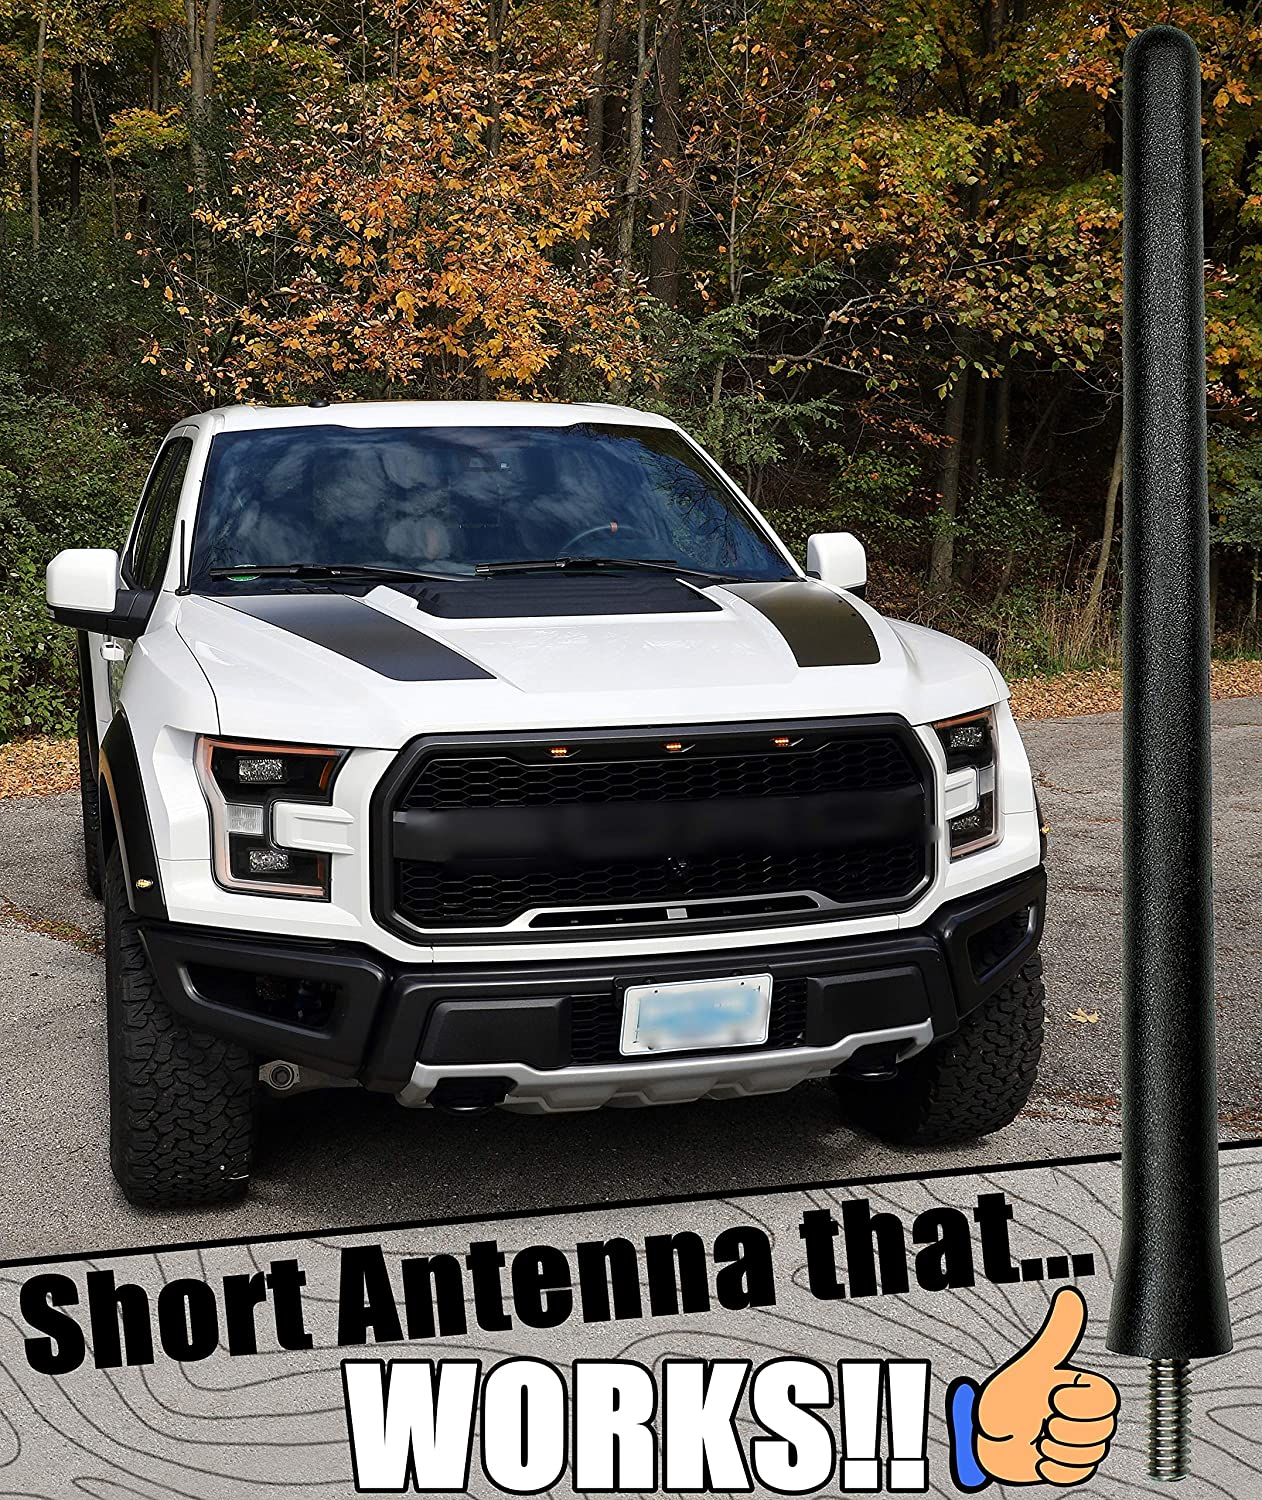 Made in USA 4 Black Aluminum Antenna is Compatible with Dodge Ram Truck 1500 AntennaMastsRus 2009-2019